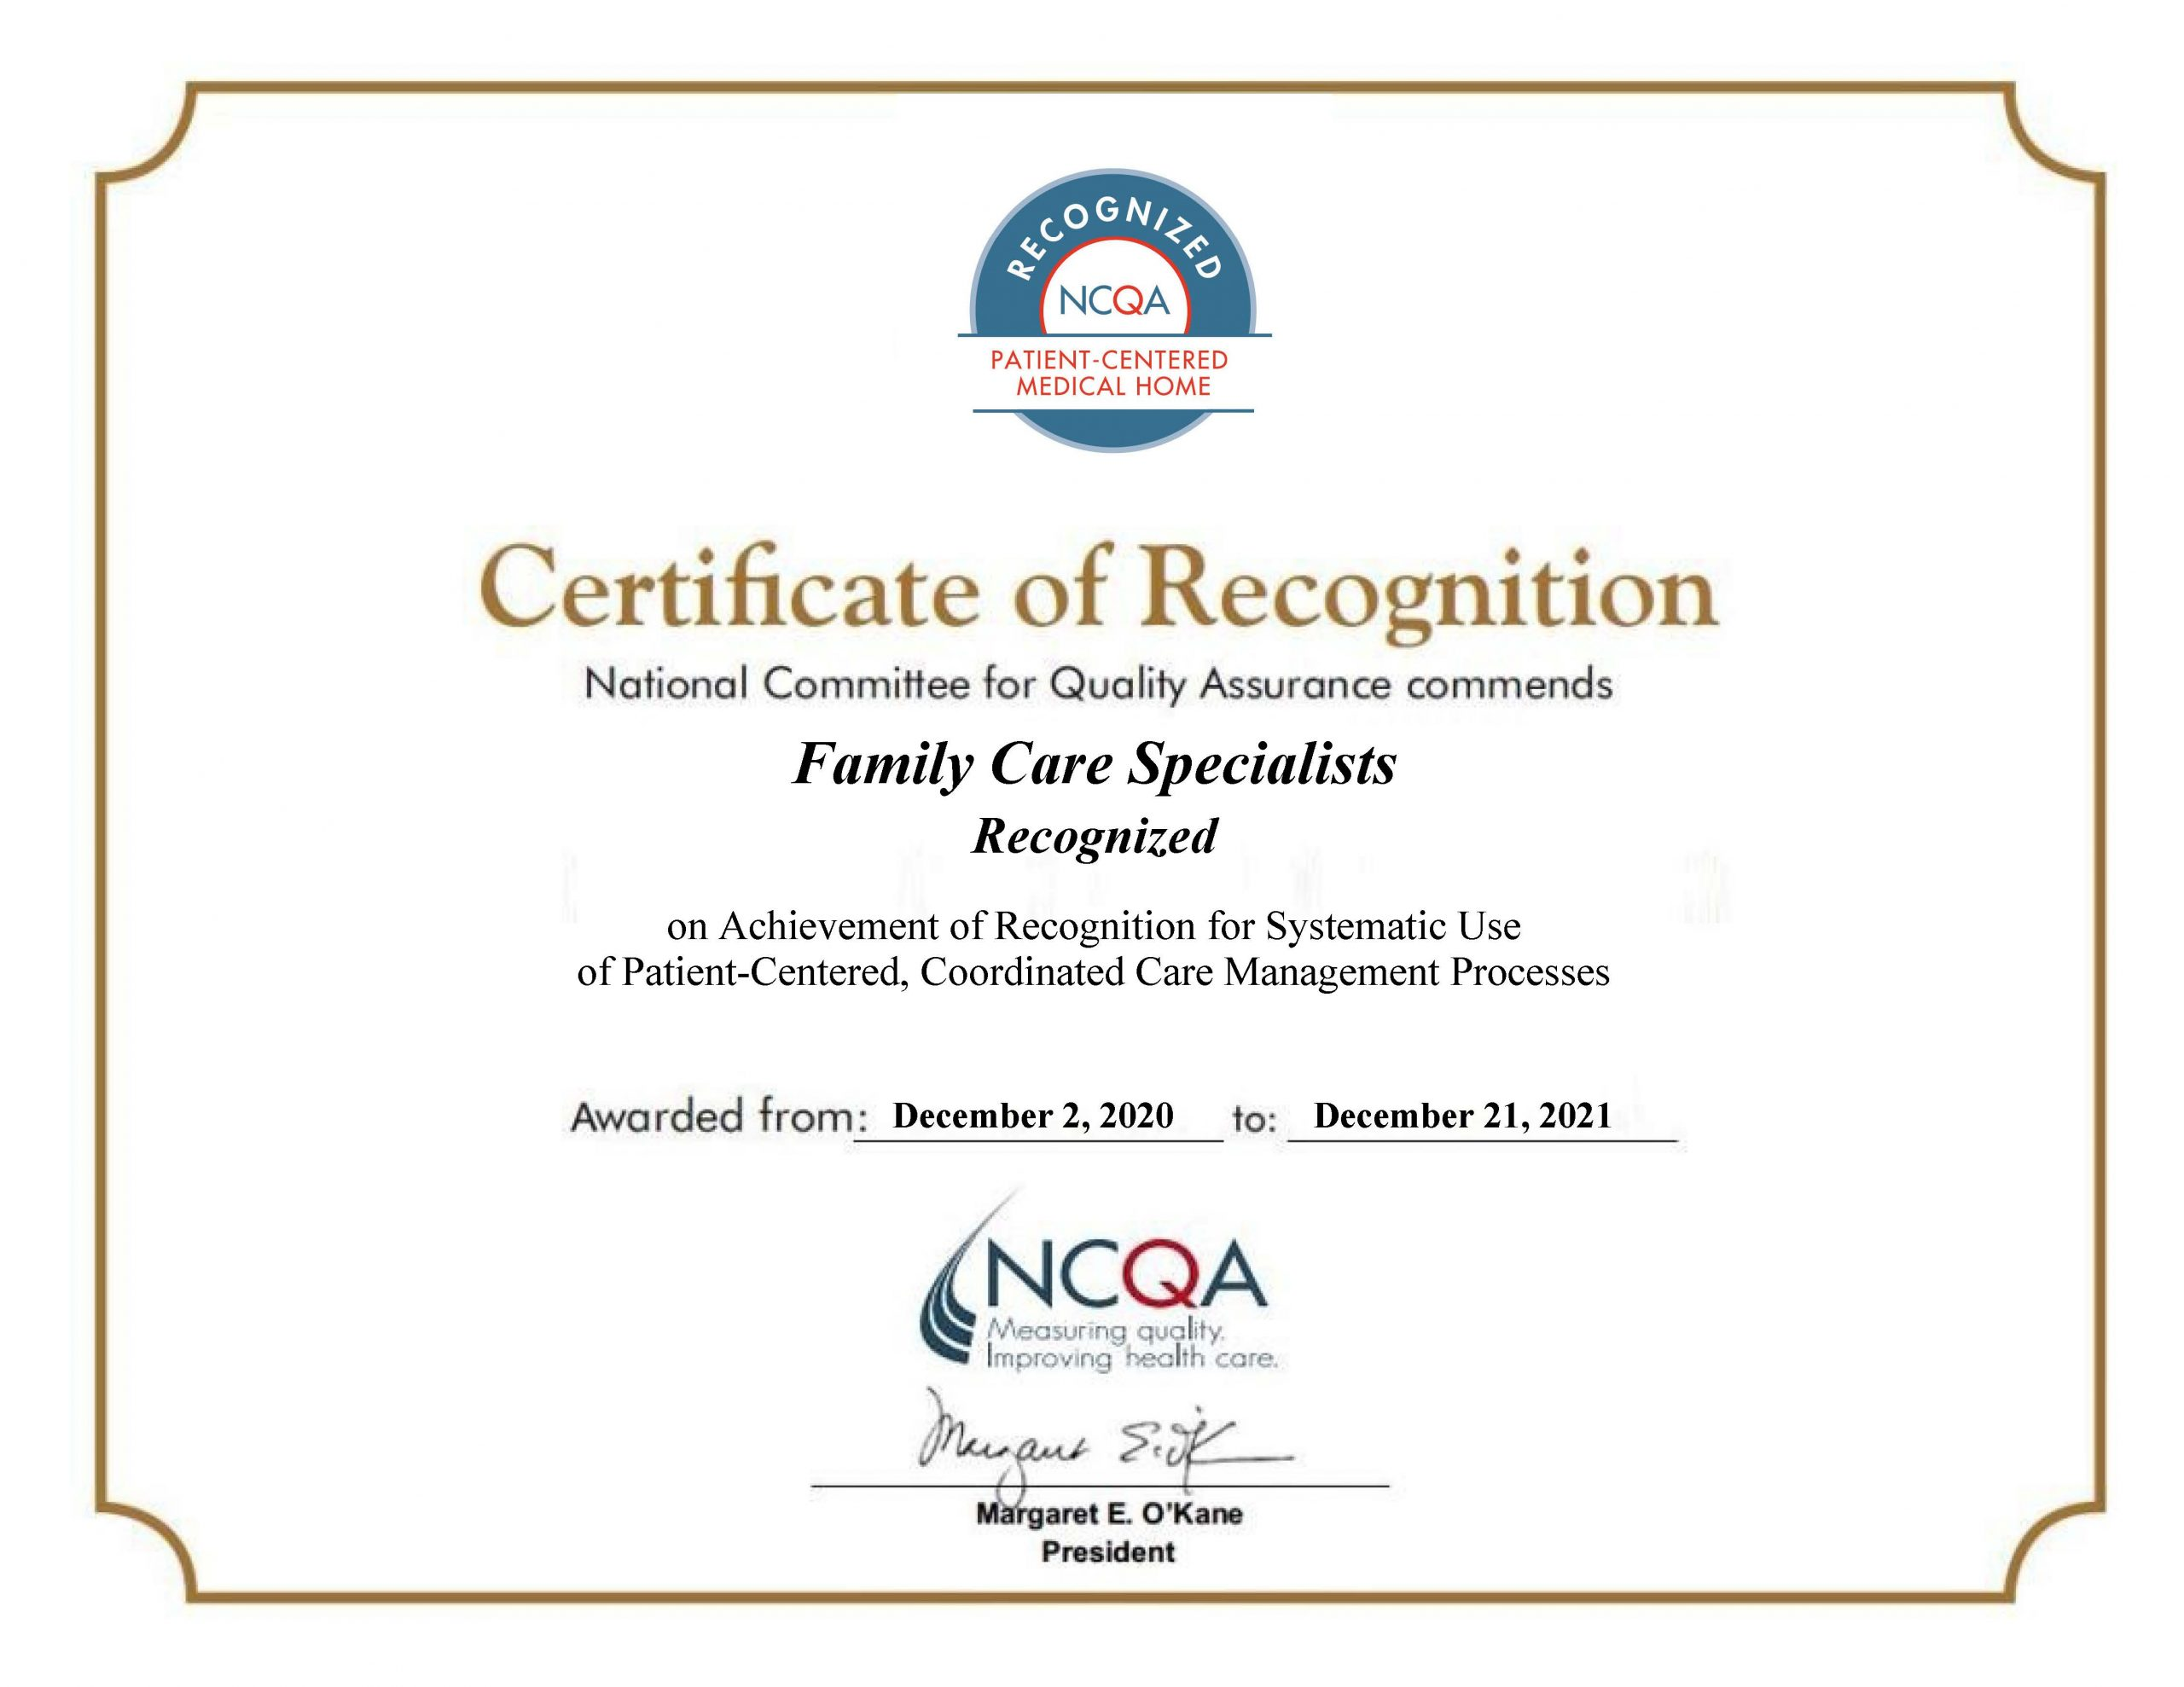 FamilyCare Specialists Recognized as a PCMH